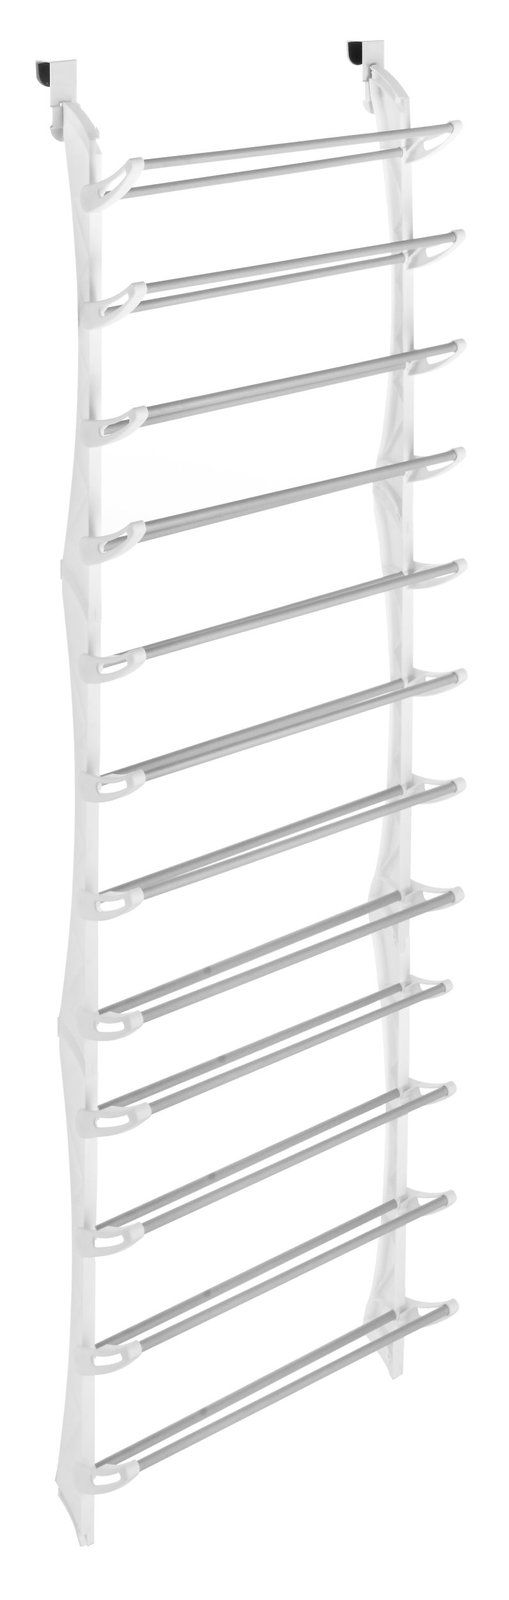 Over The Door 36 Pair Shoe Rack, White   Casa.com